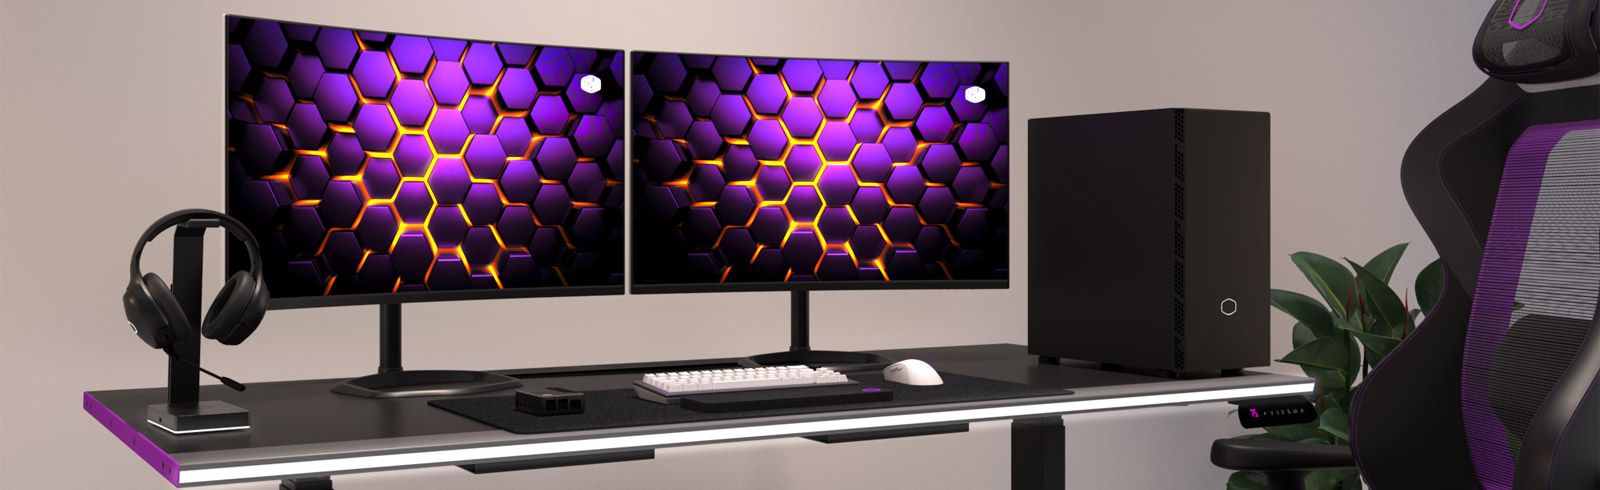 Cooler Master presents the GM32-FQ, GM32-CQ, GM27-FQ ARGB and the GM27-FF gaming monitors